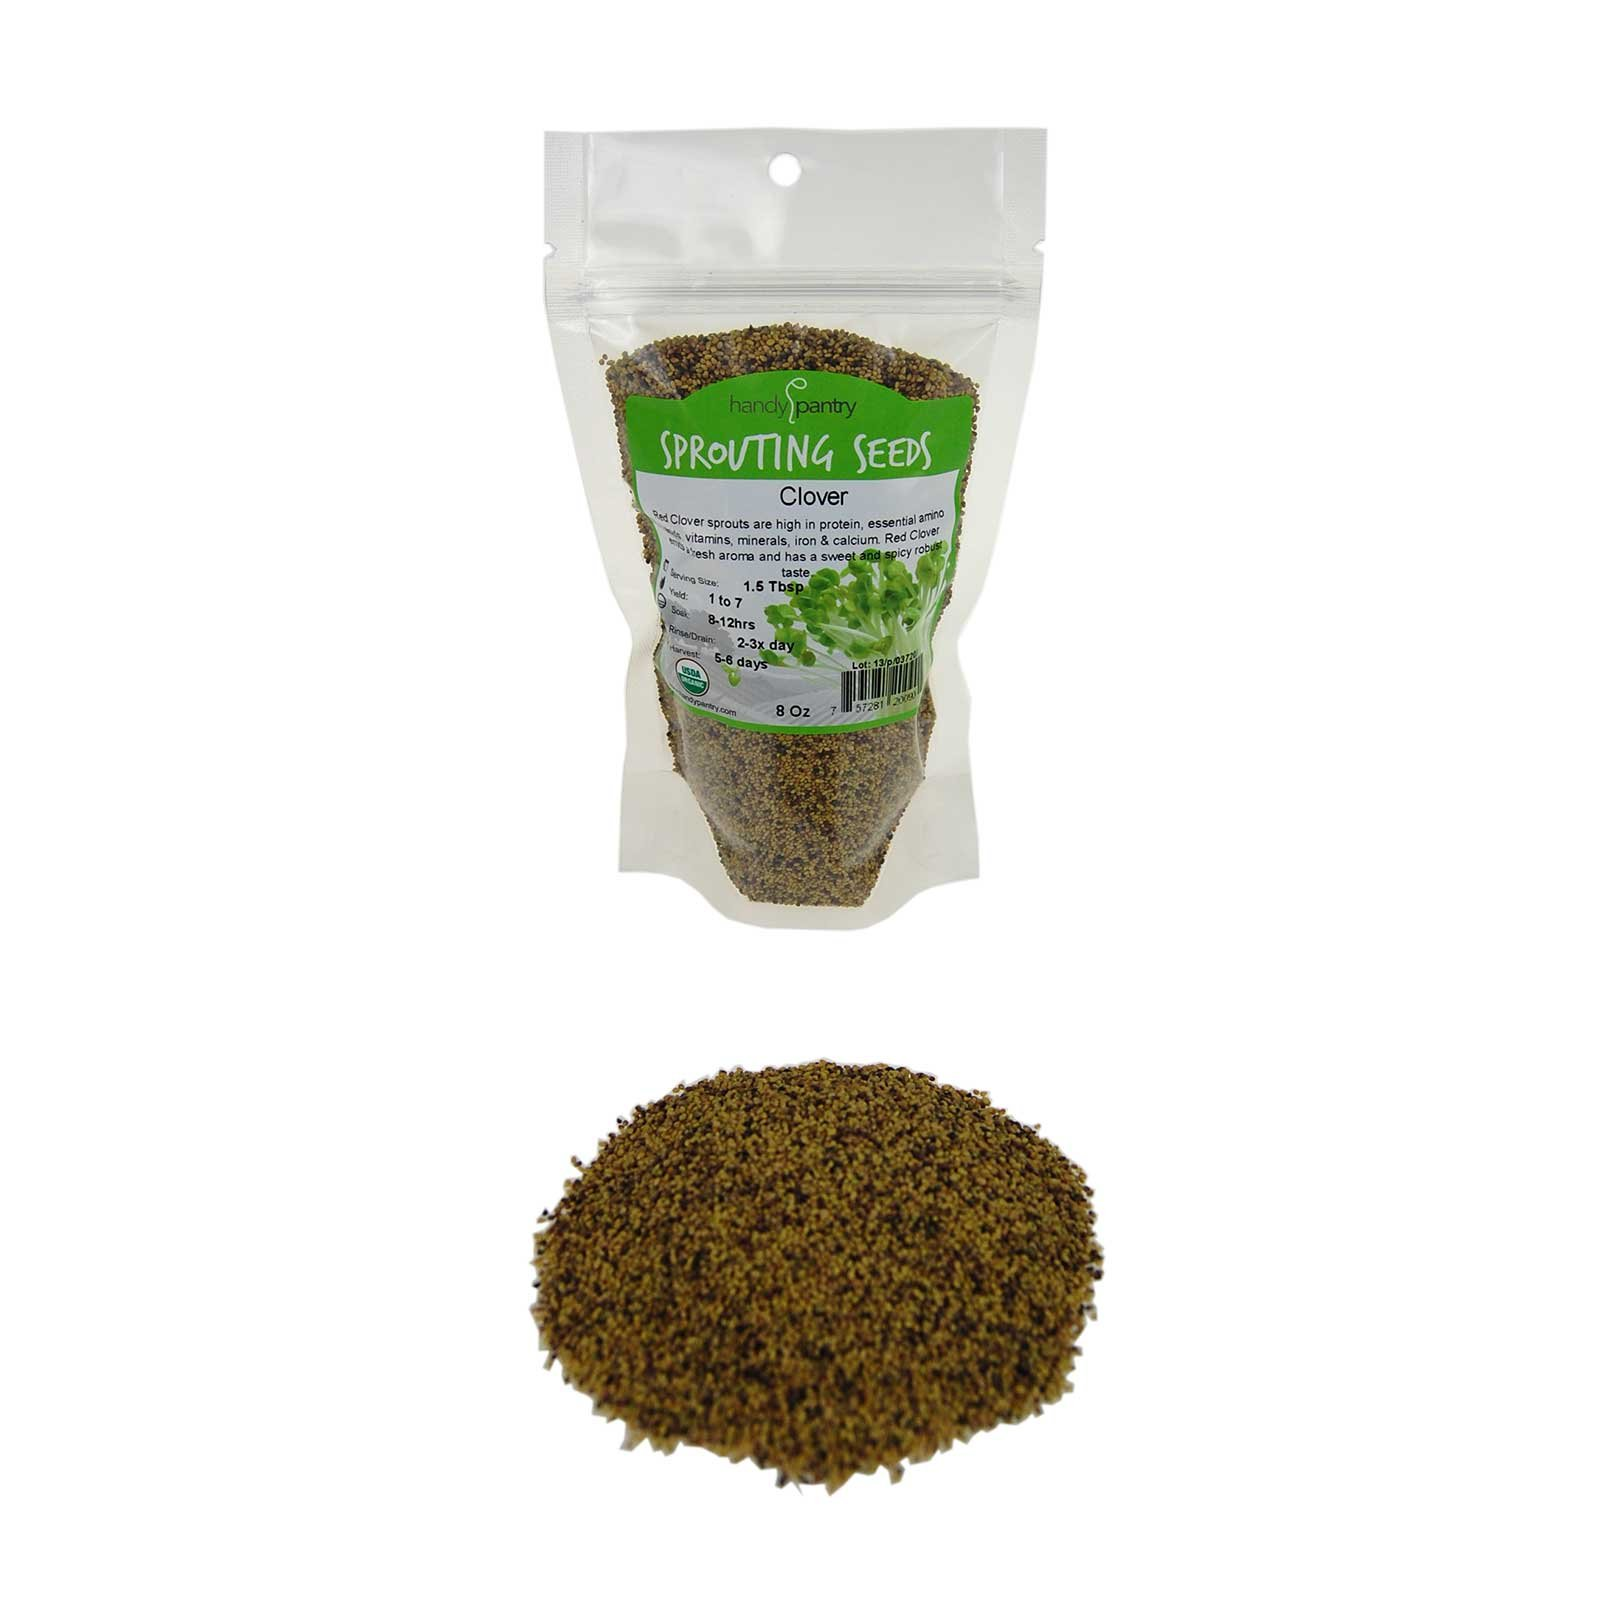 Handy Pantry Certified Organic Red Clover Sprouting Seeds - (8 Oz) Brand: Red Sweet Clover Seed for Sprouting, Gardening, Salad Greens, Hydroponics, Edible Seed, Food Storage & More